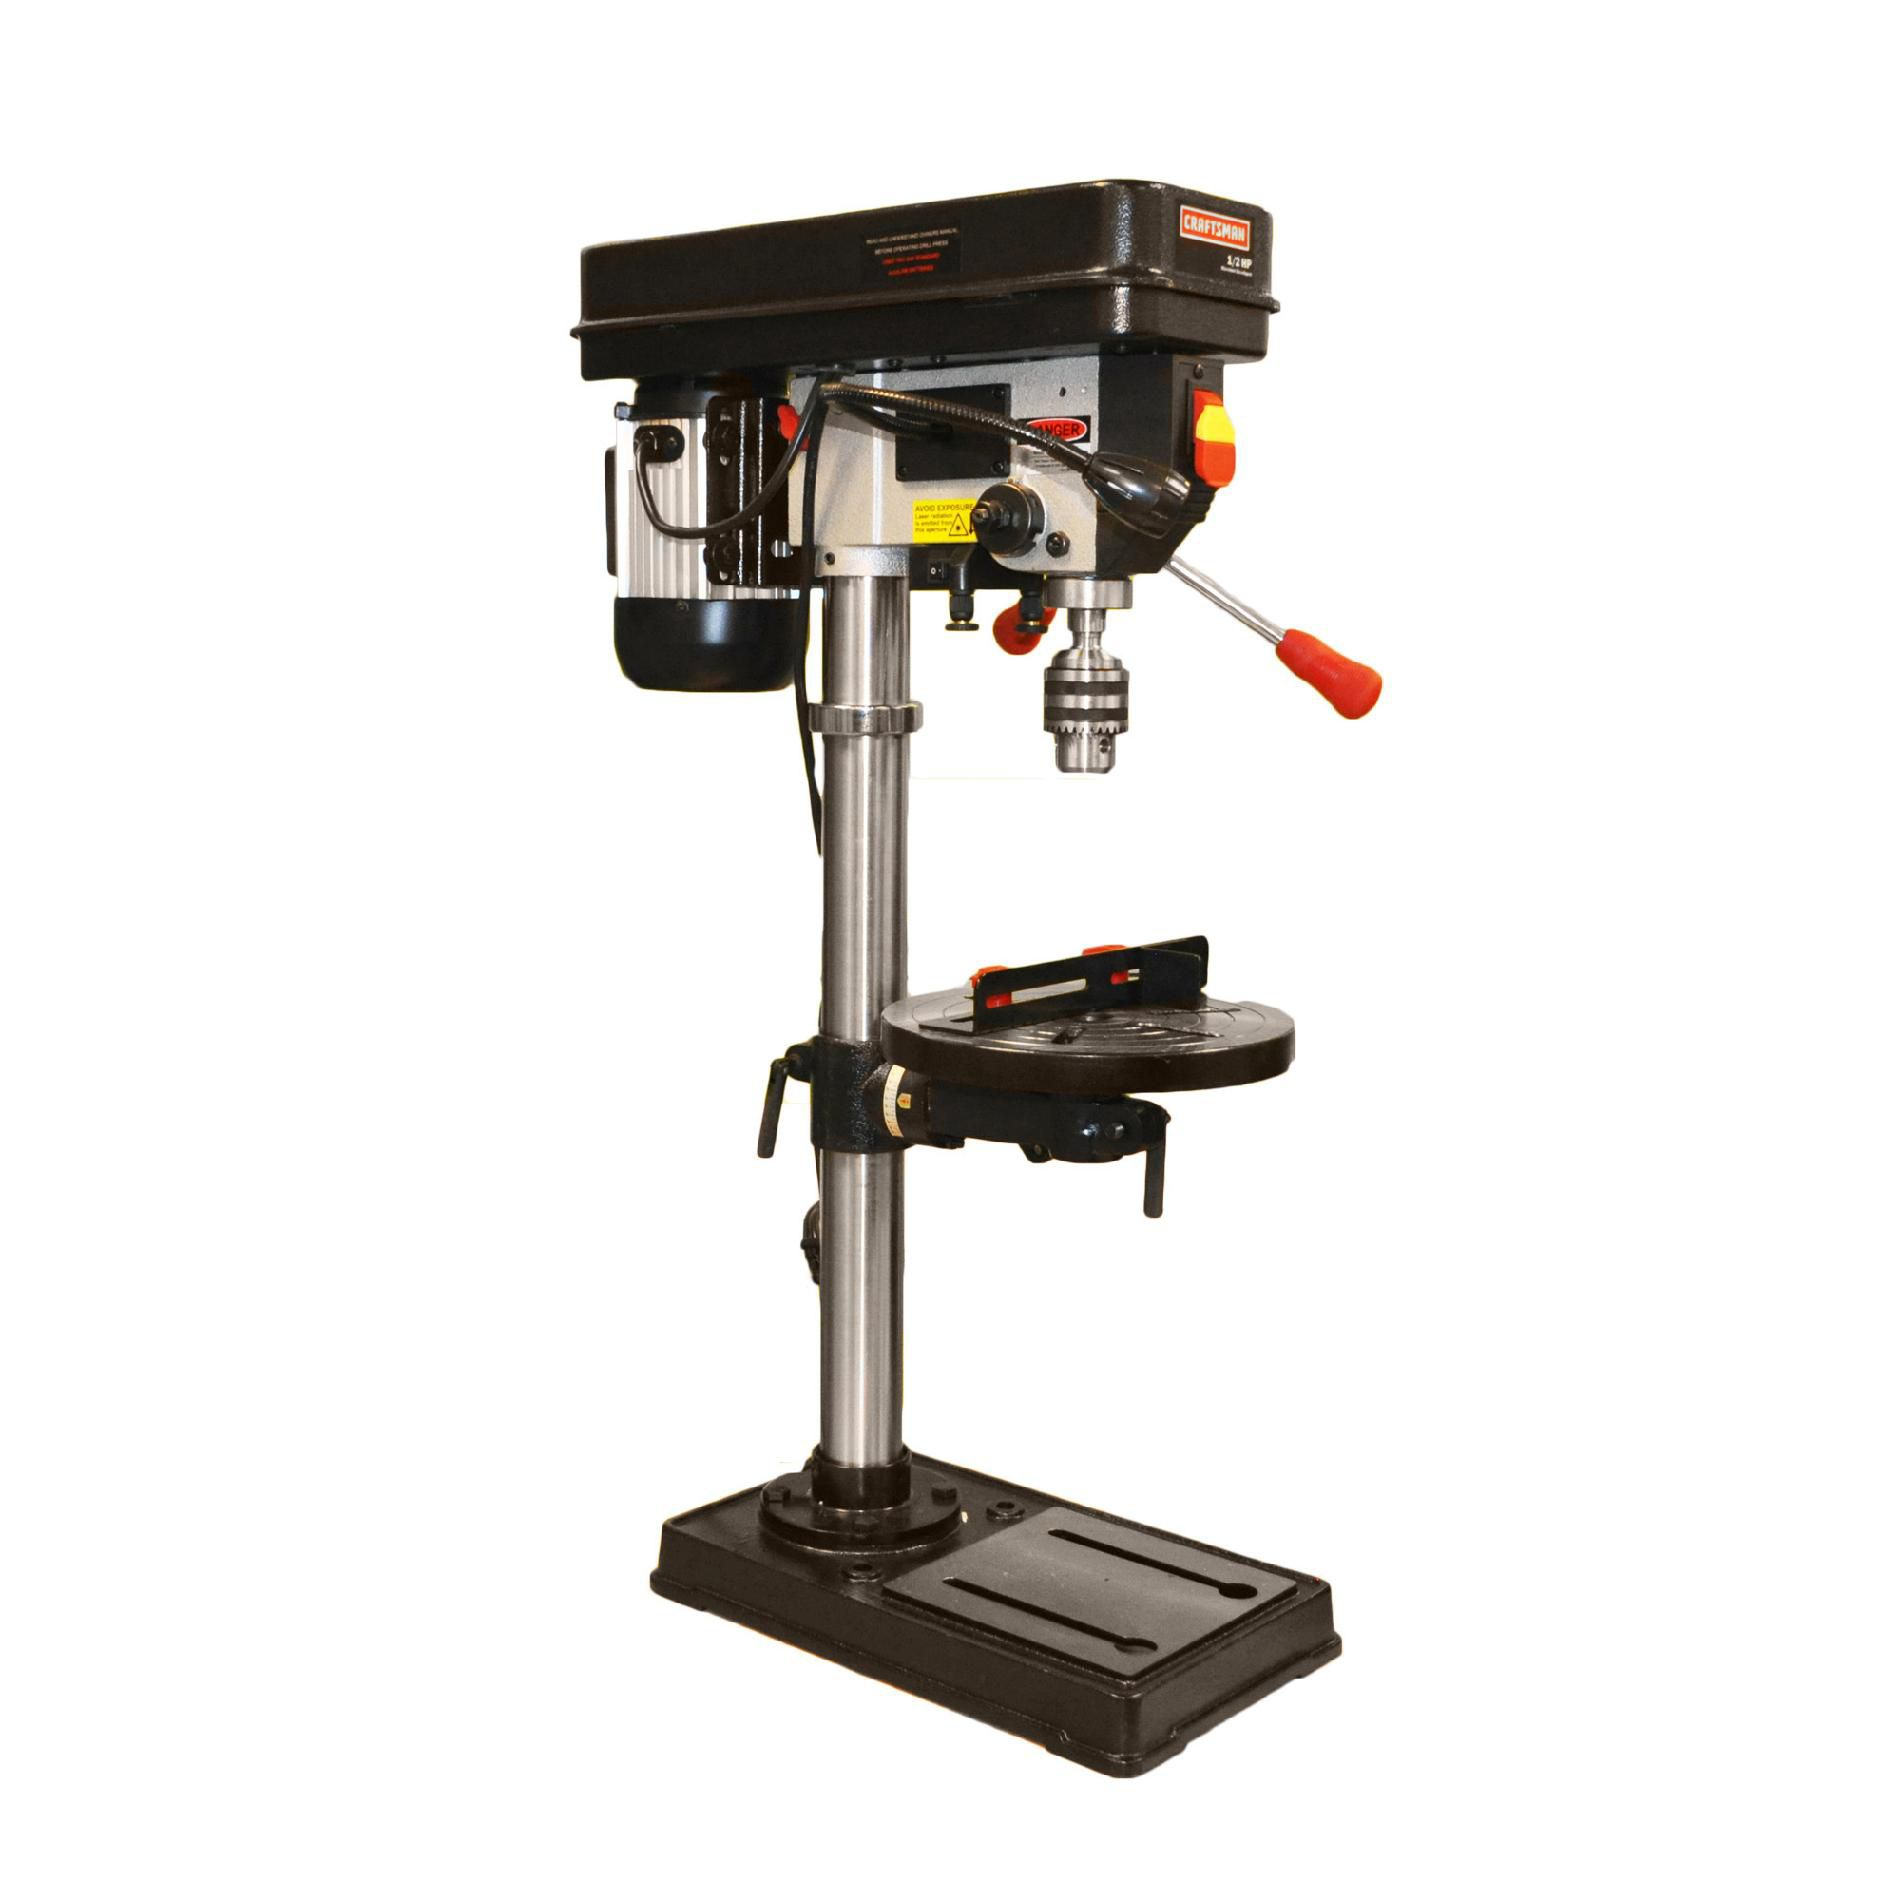 Productos Taladros Pedestales Pemco S A Panam 225